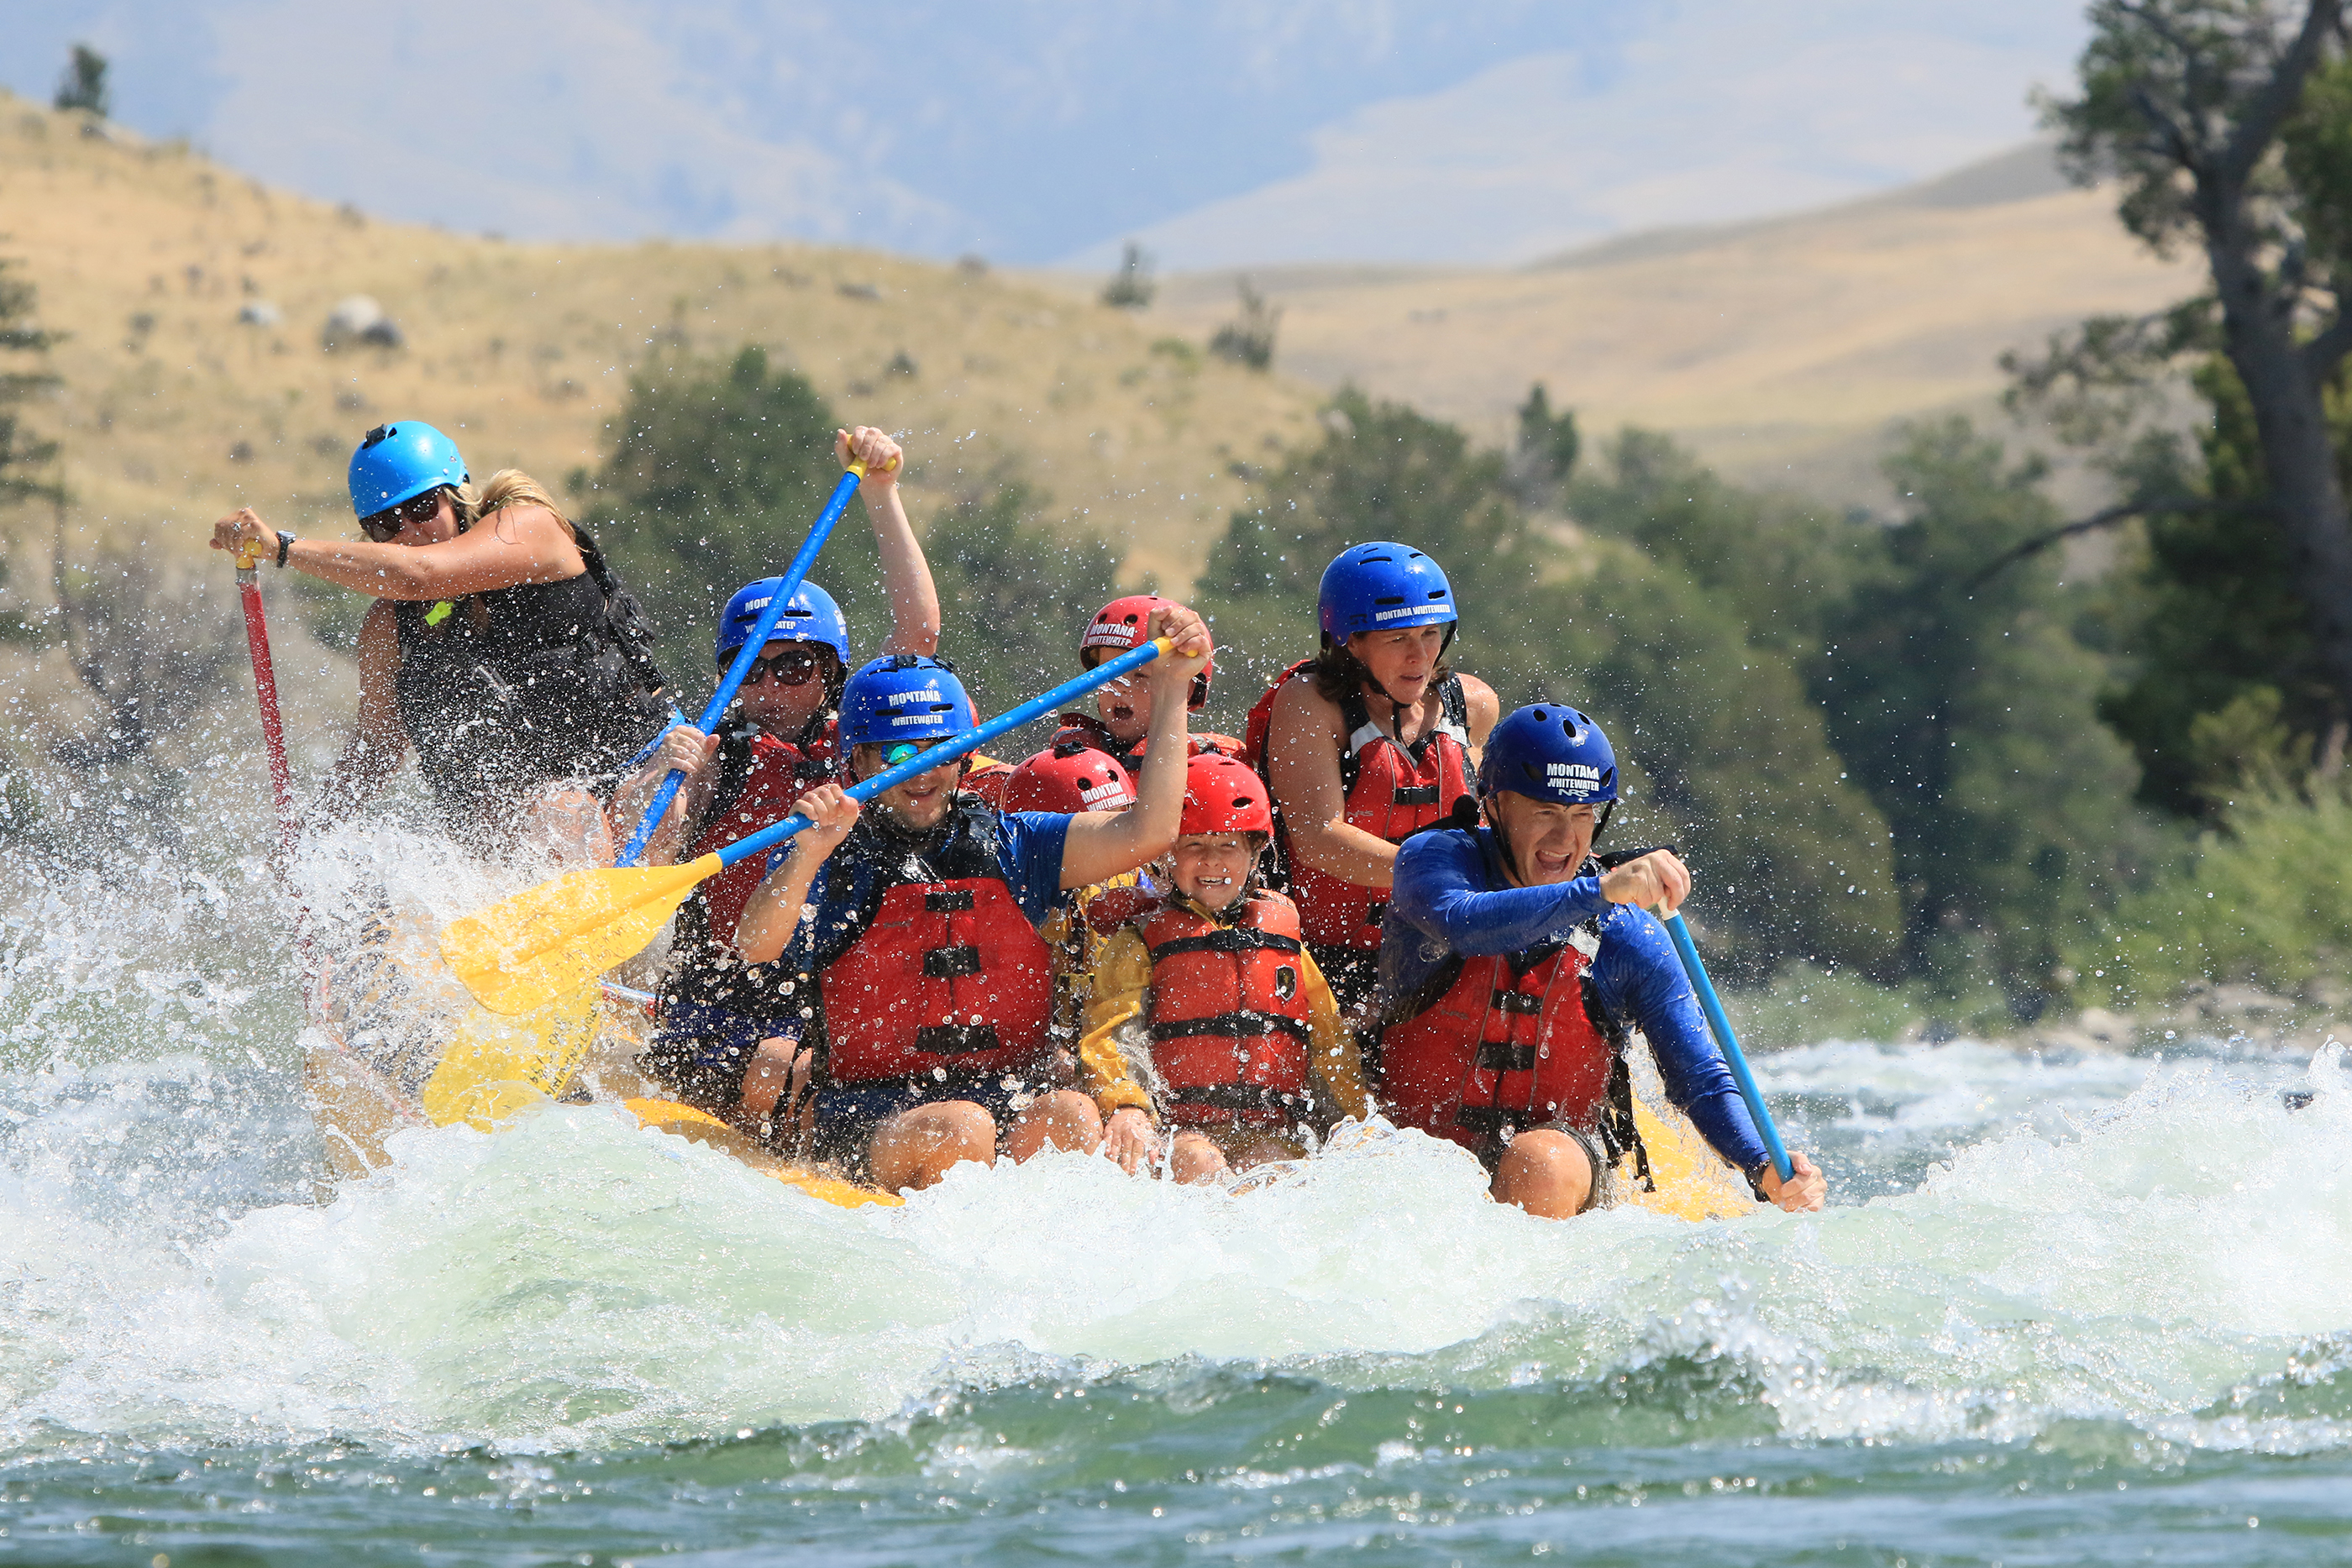 Montana Whitewater half-day whitewater rafting trip on the Yellowstone River